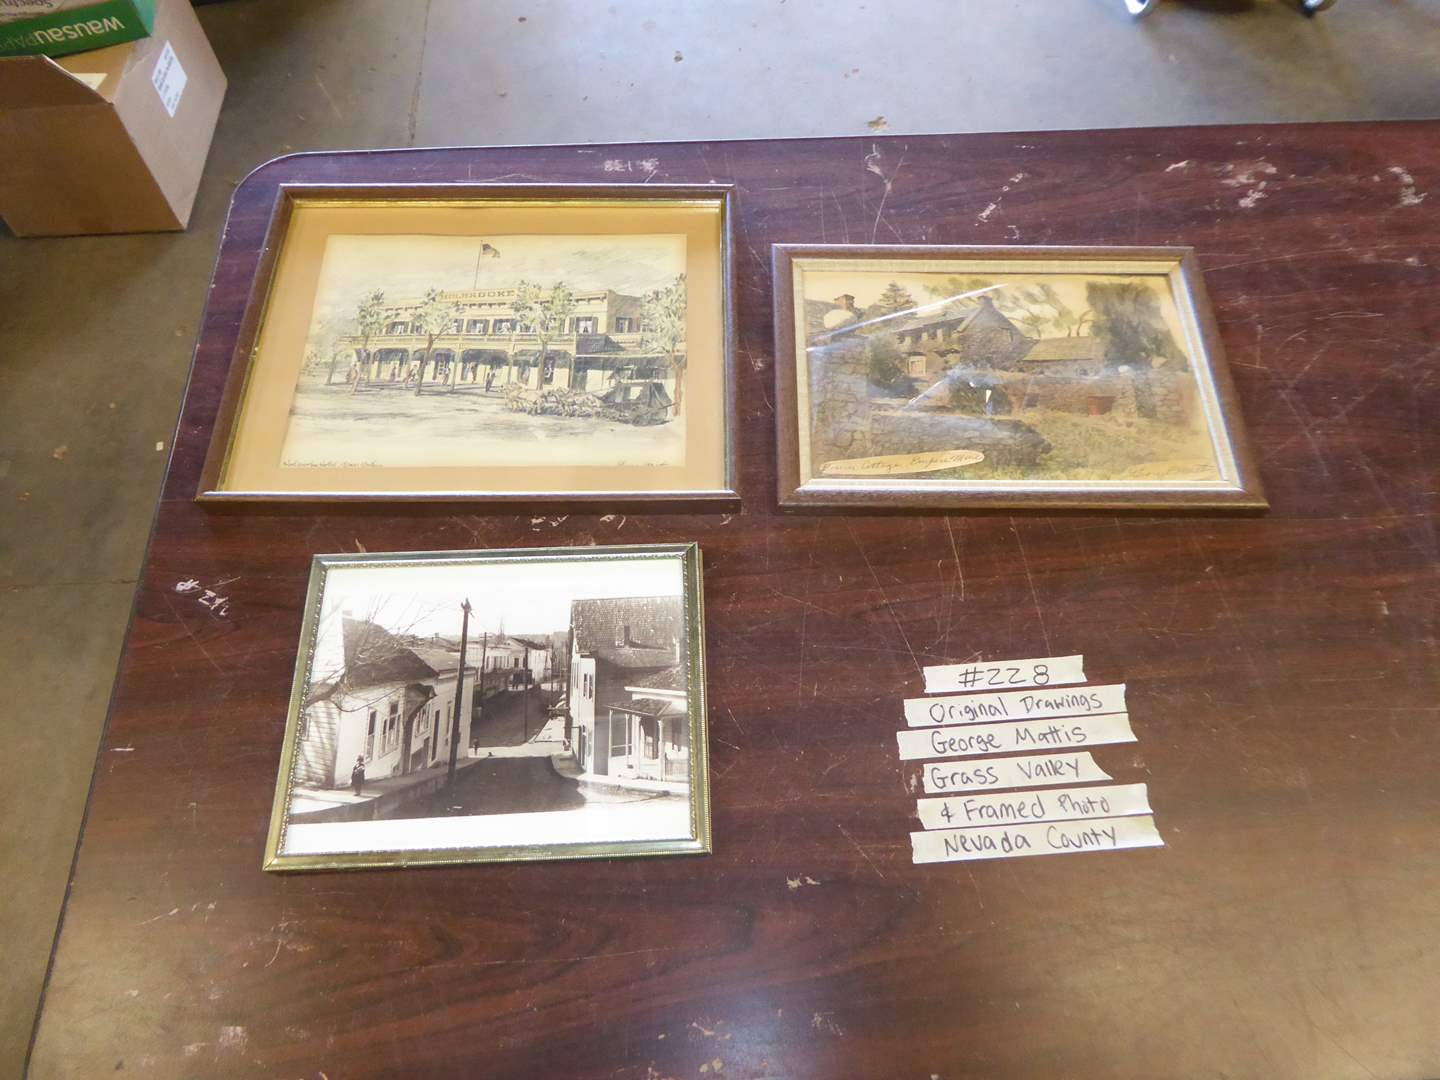 Lot # 228 - Two Prints By George Mattis Nevada County & Framed Photo (main image)